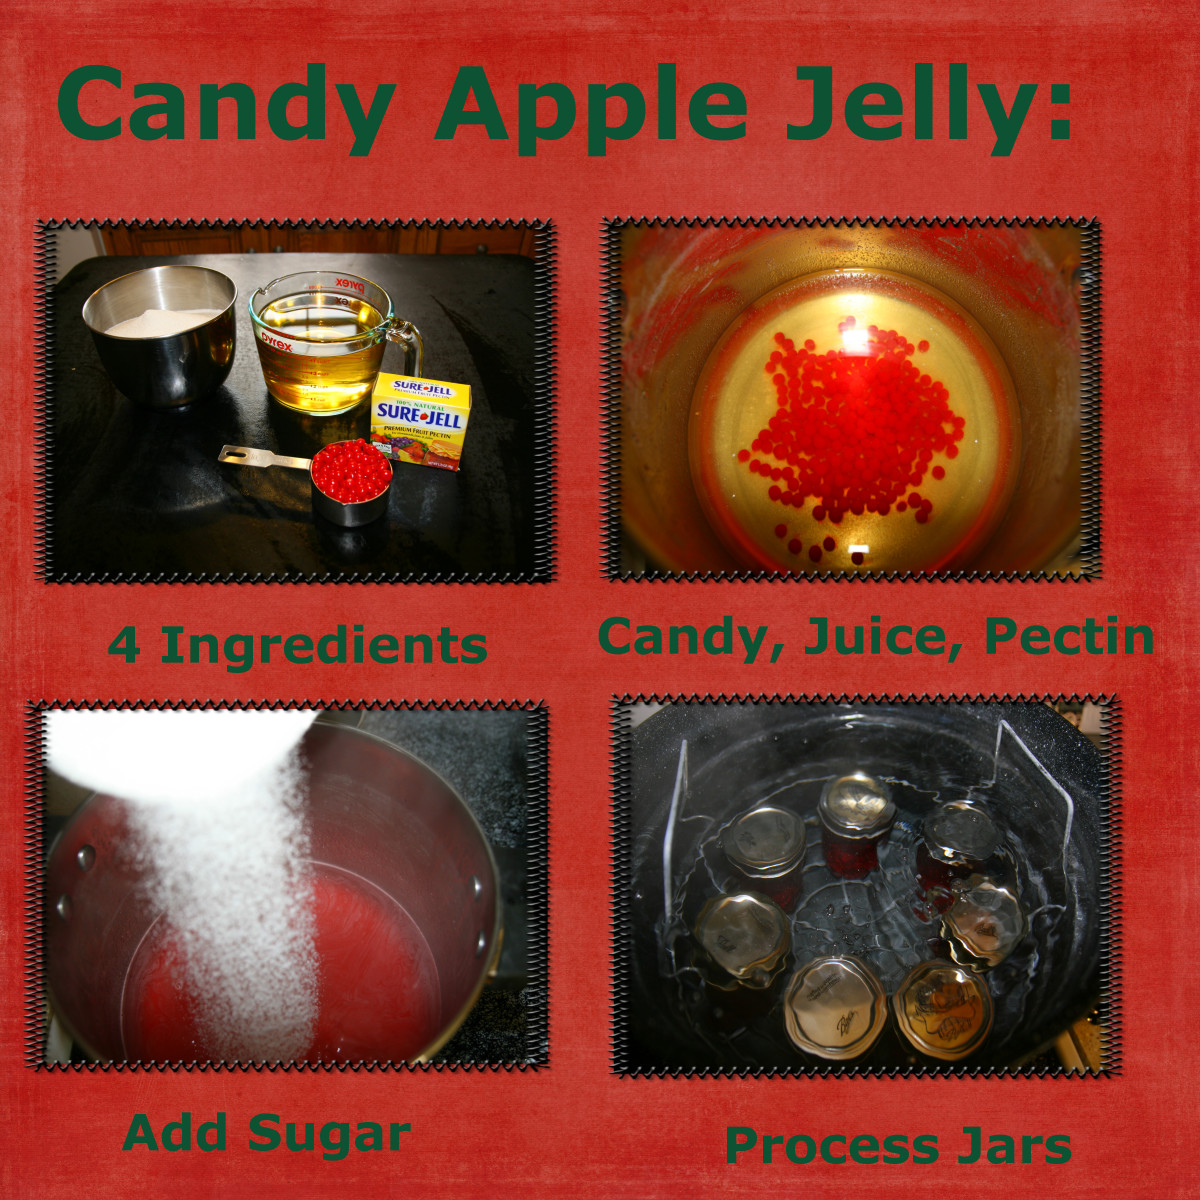 Candy Apple Jelly is very simple to make, and it requires only four ingredients (click to enlarge).